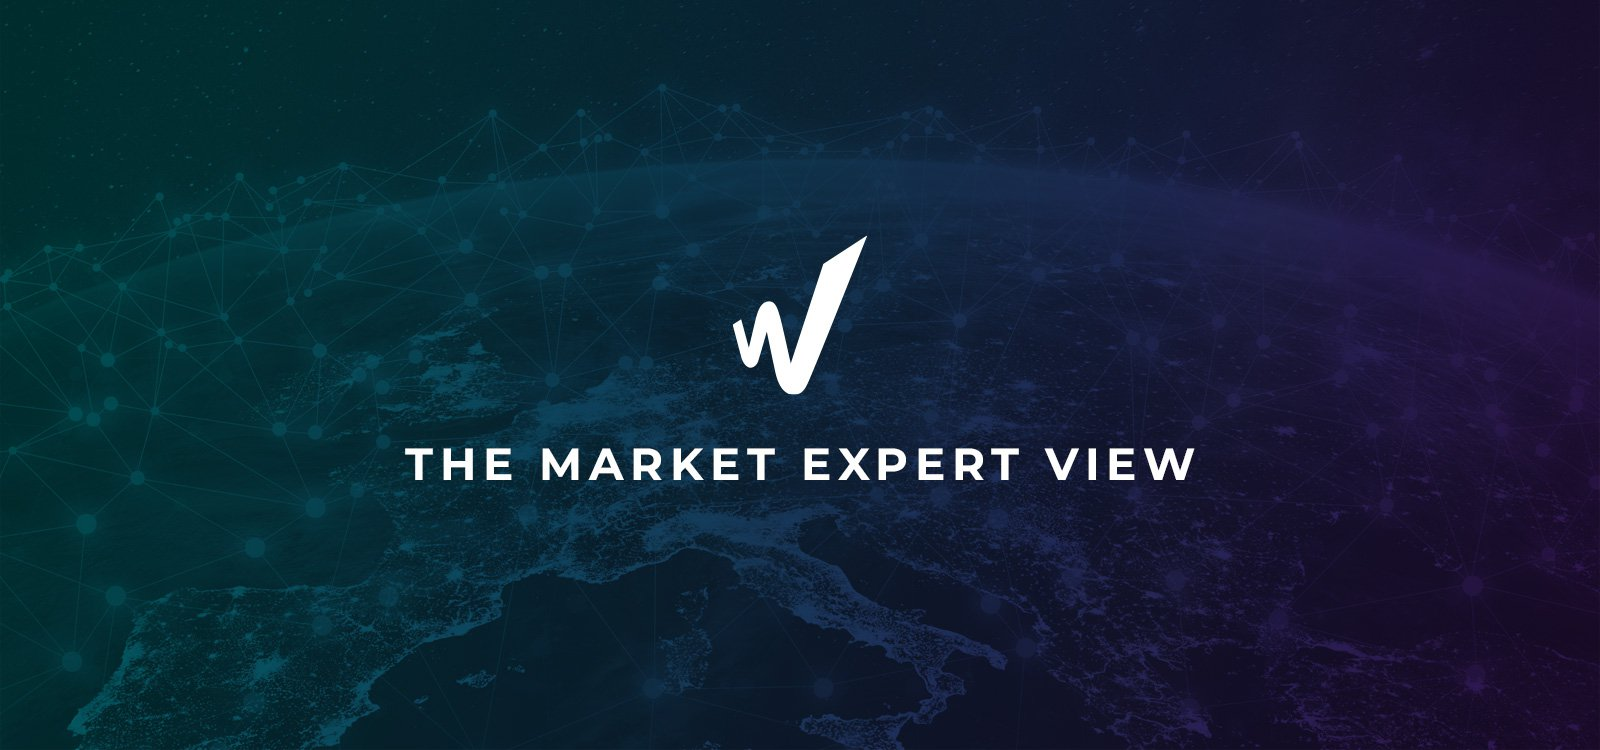 events_market_expert_view.jpg